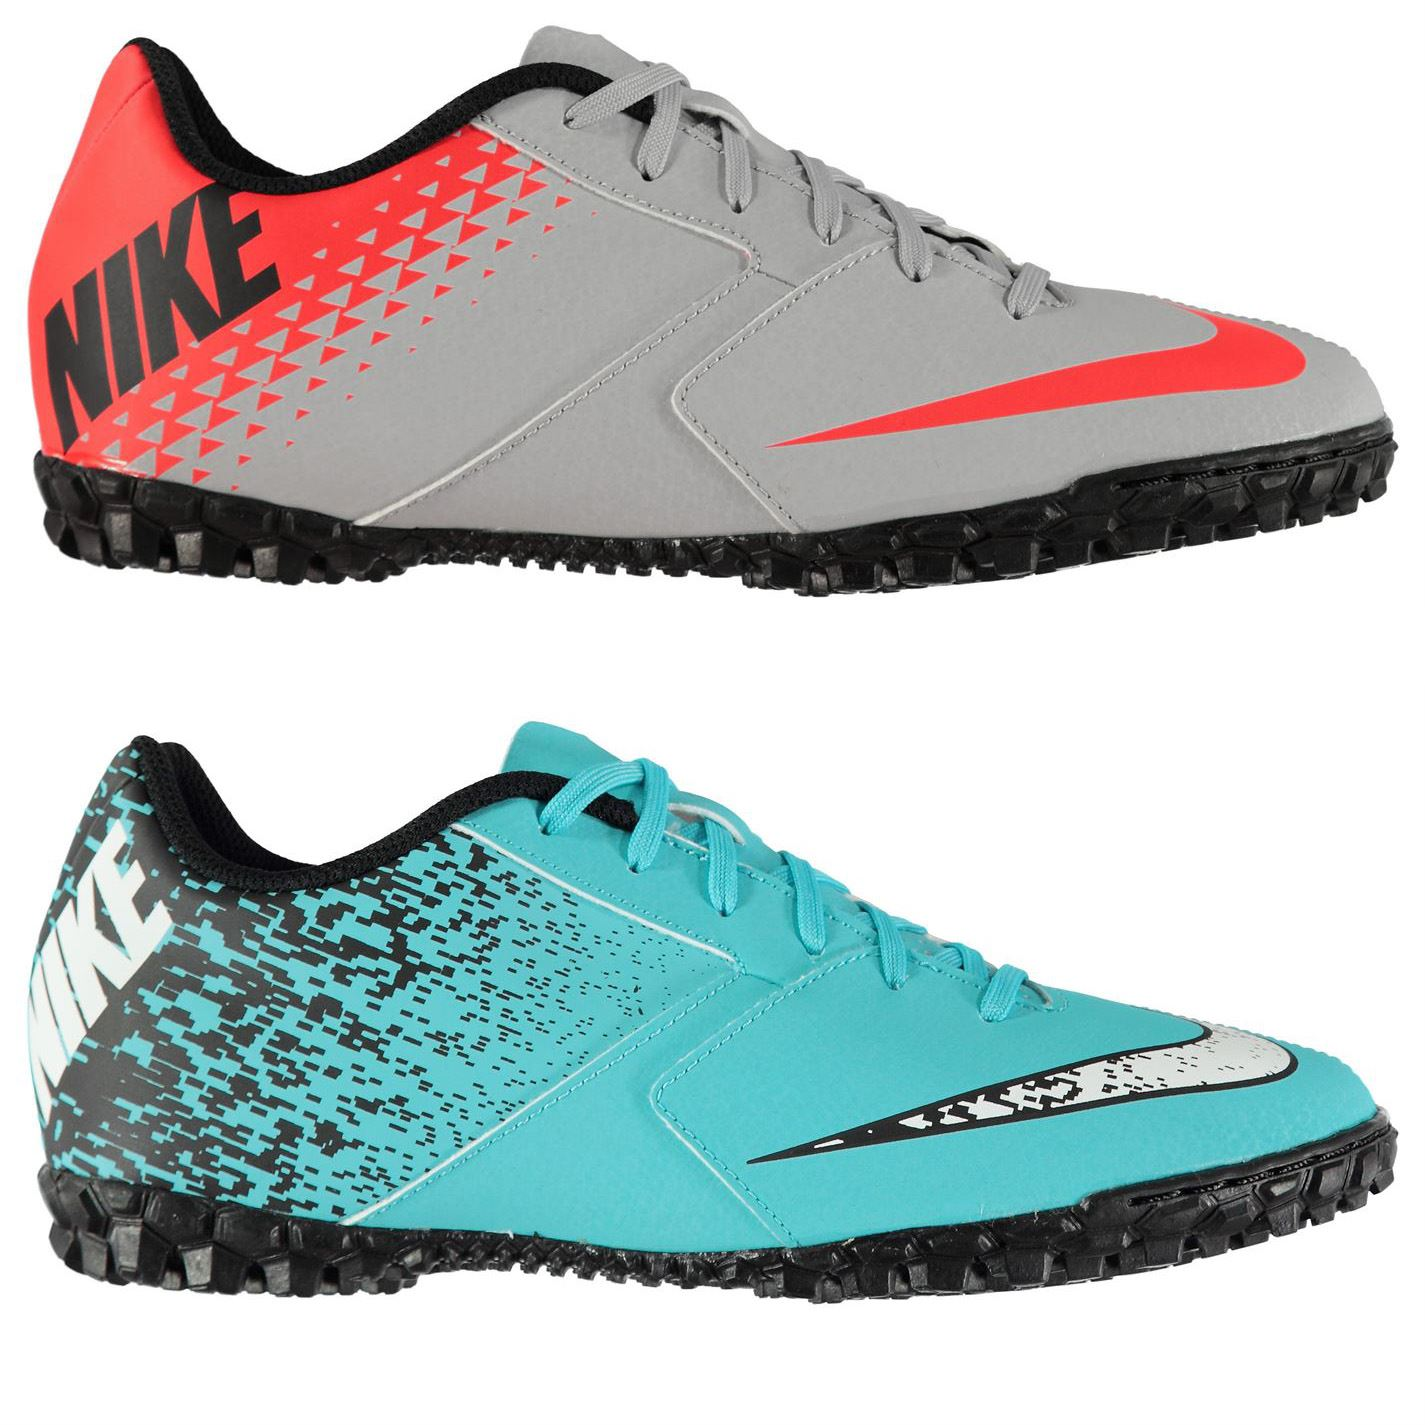 595dbce466c ... Nike Bomba X Astro Turf Football Trainers Mens Soccer Shoes Sneakers ...